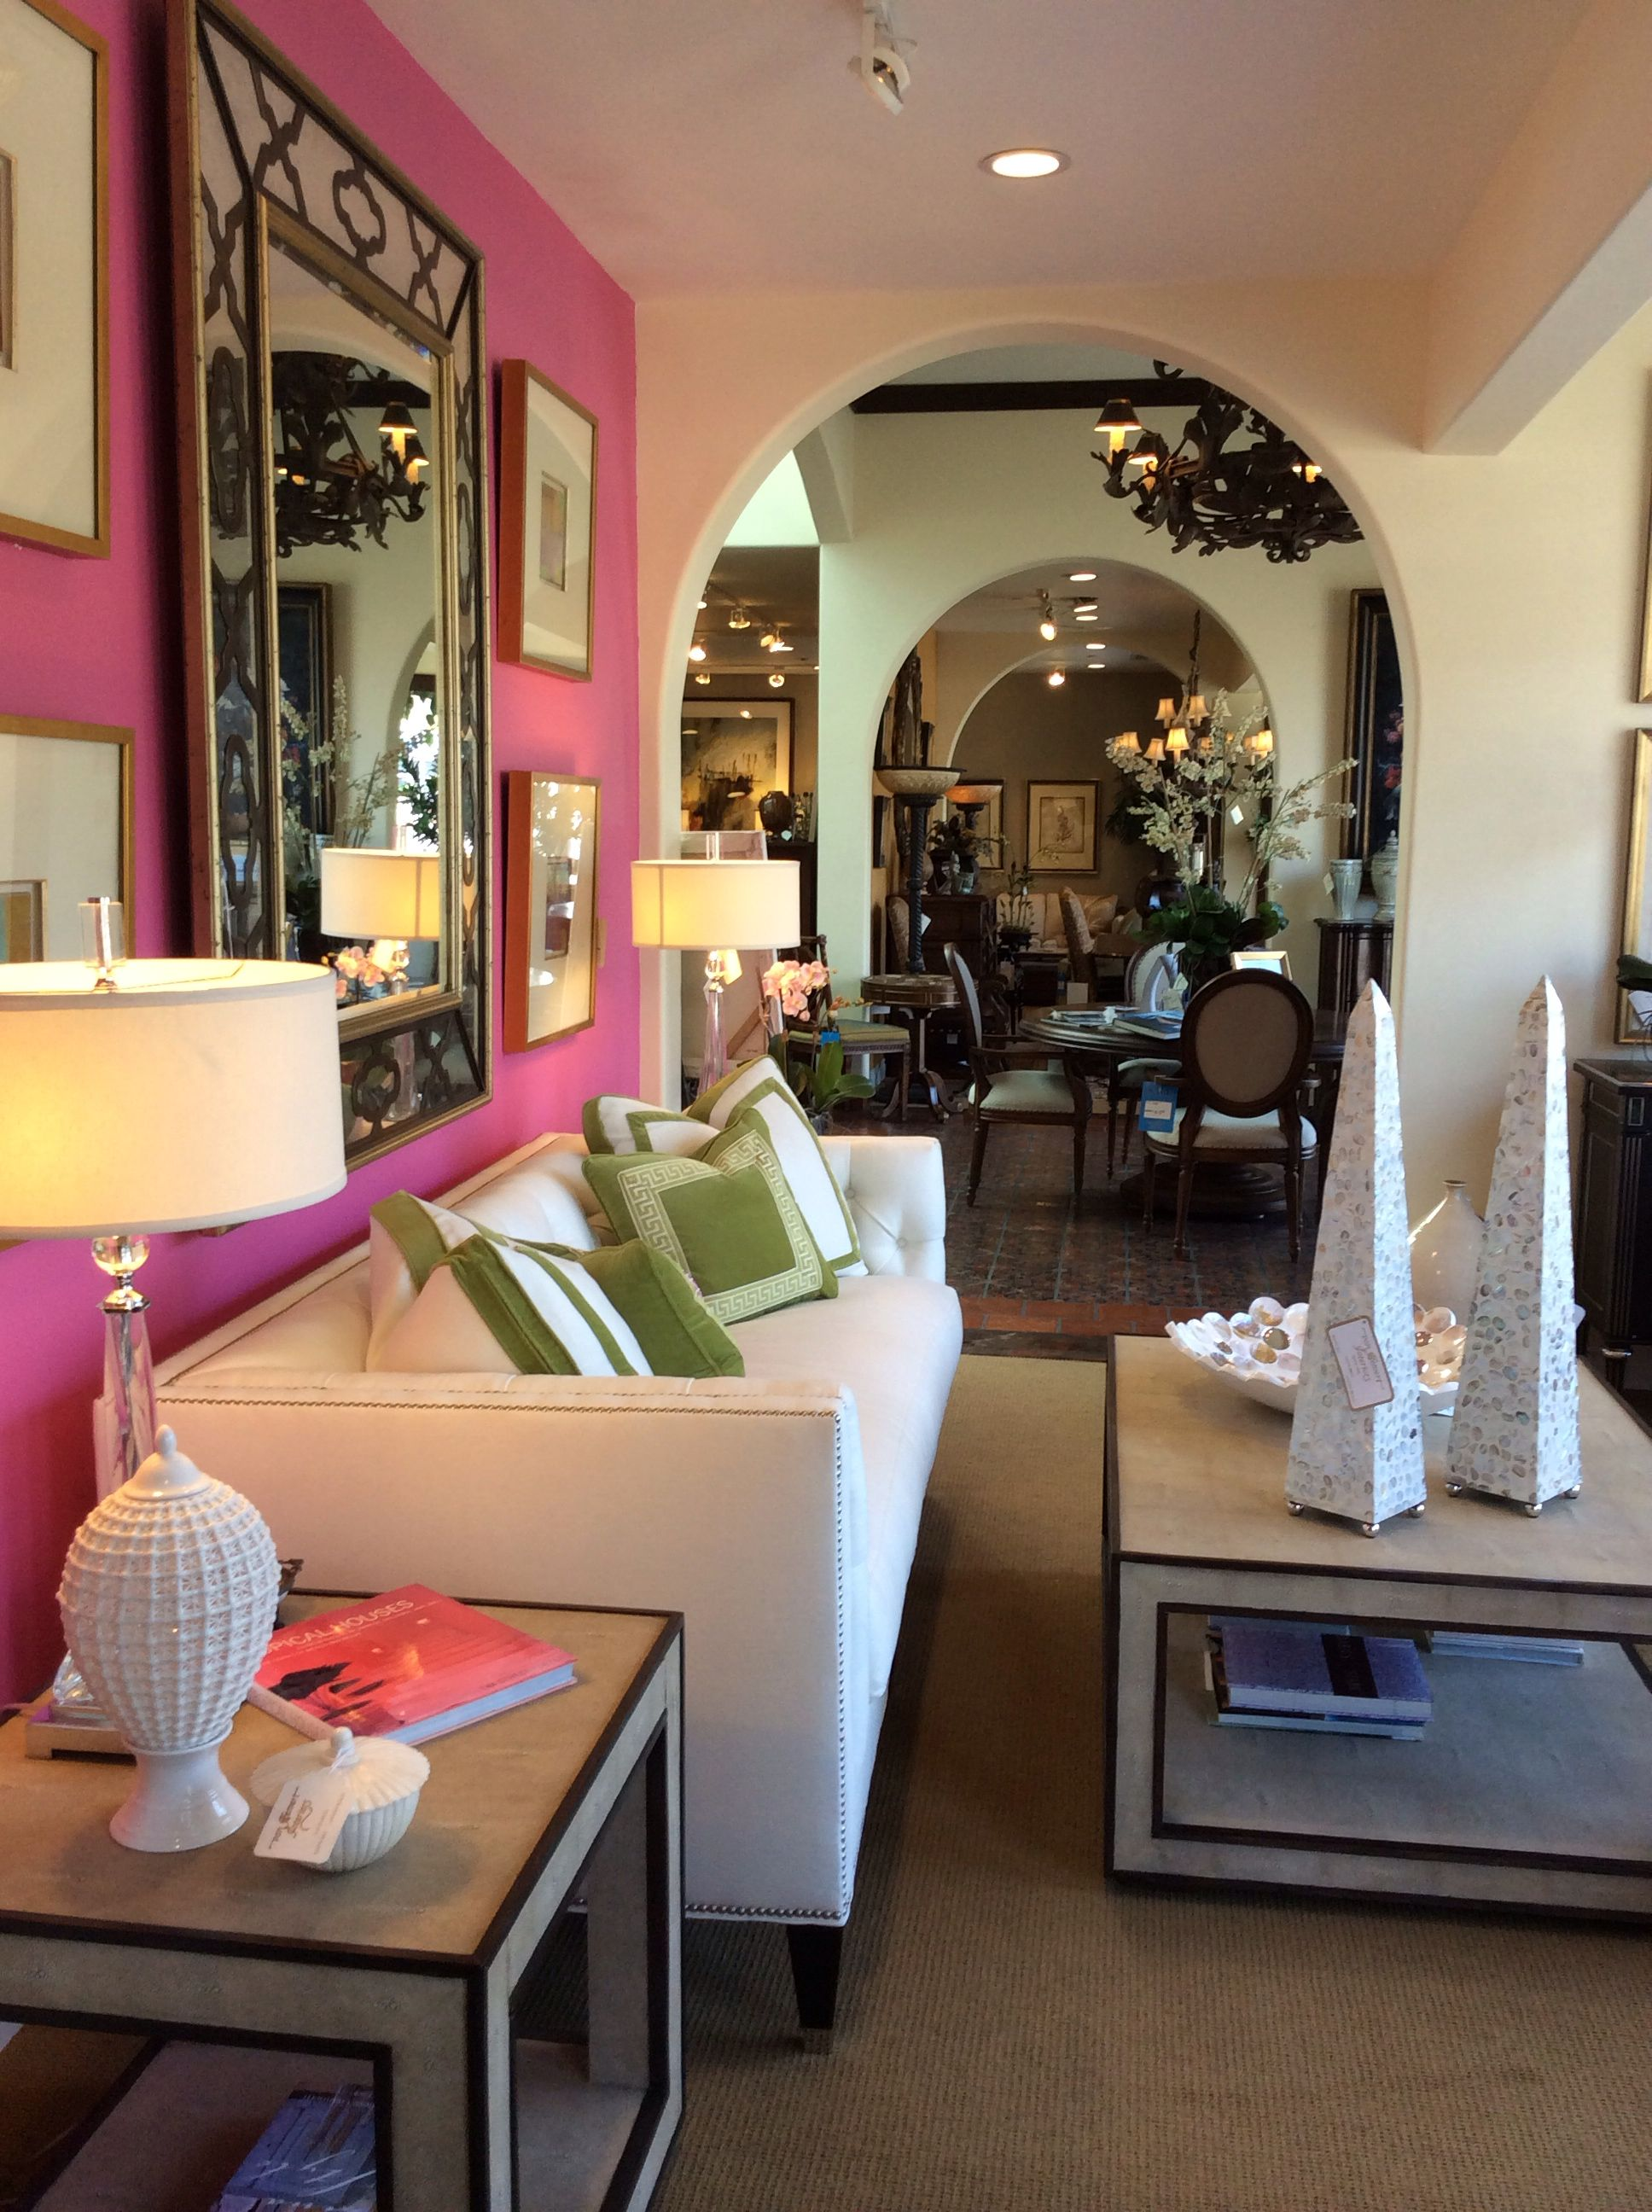 Radiant Orchid Is The Color Of The Year. Von Hemert Interiors Front Window  At Our